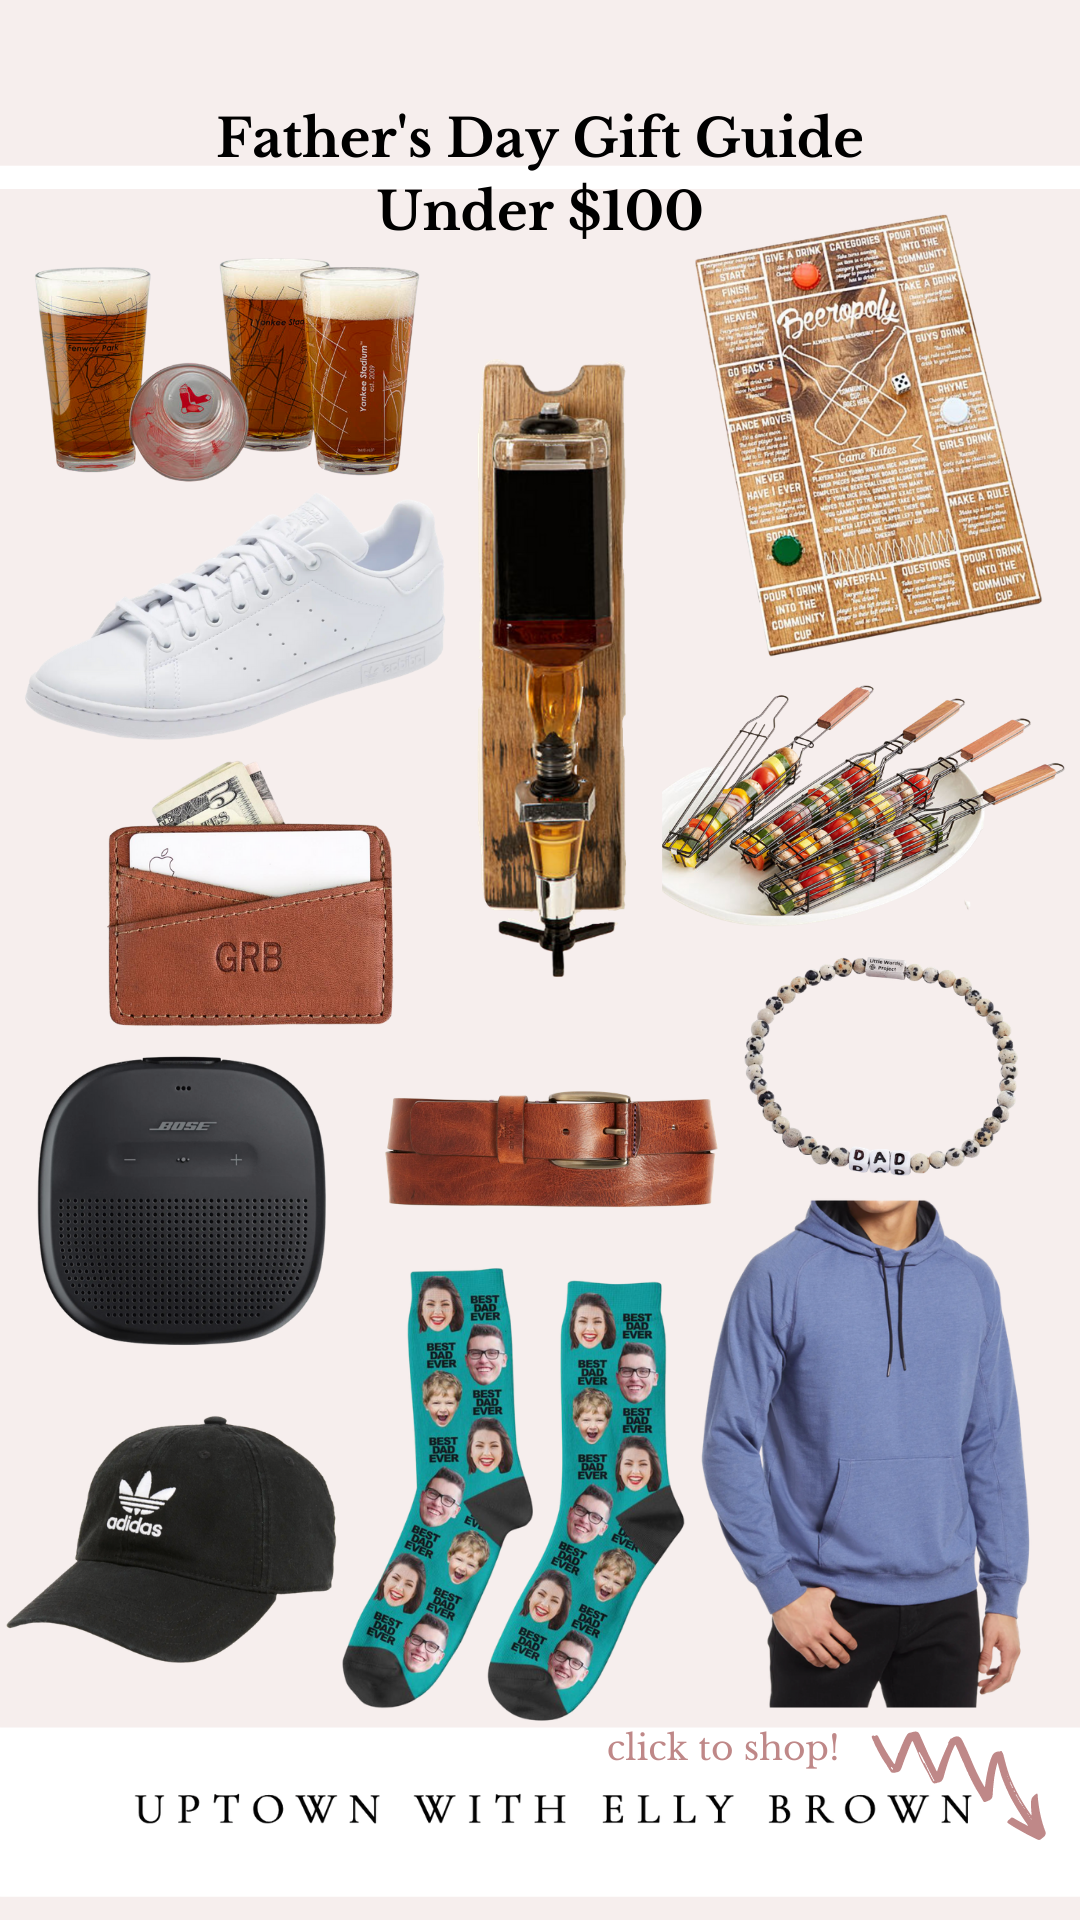 Houston blogger Uptown with Elly Brown shares a round-up of Father's Day Gift Ideas! From shoes to electronics see the full list here!